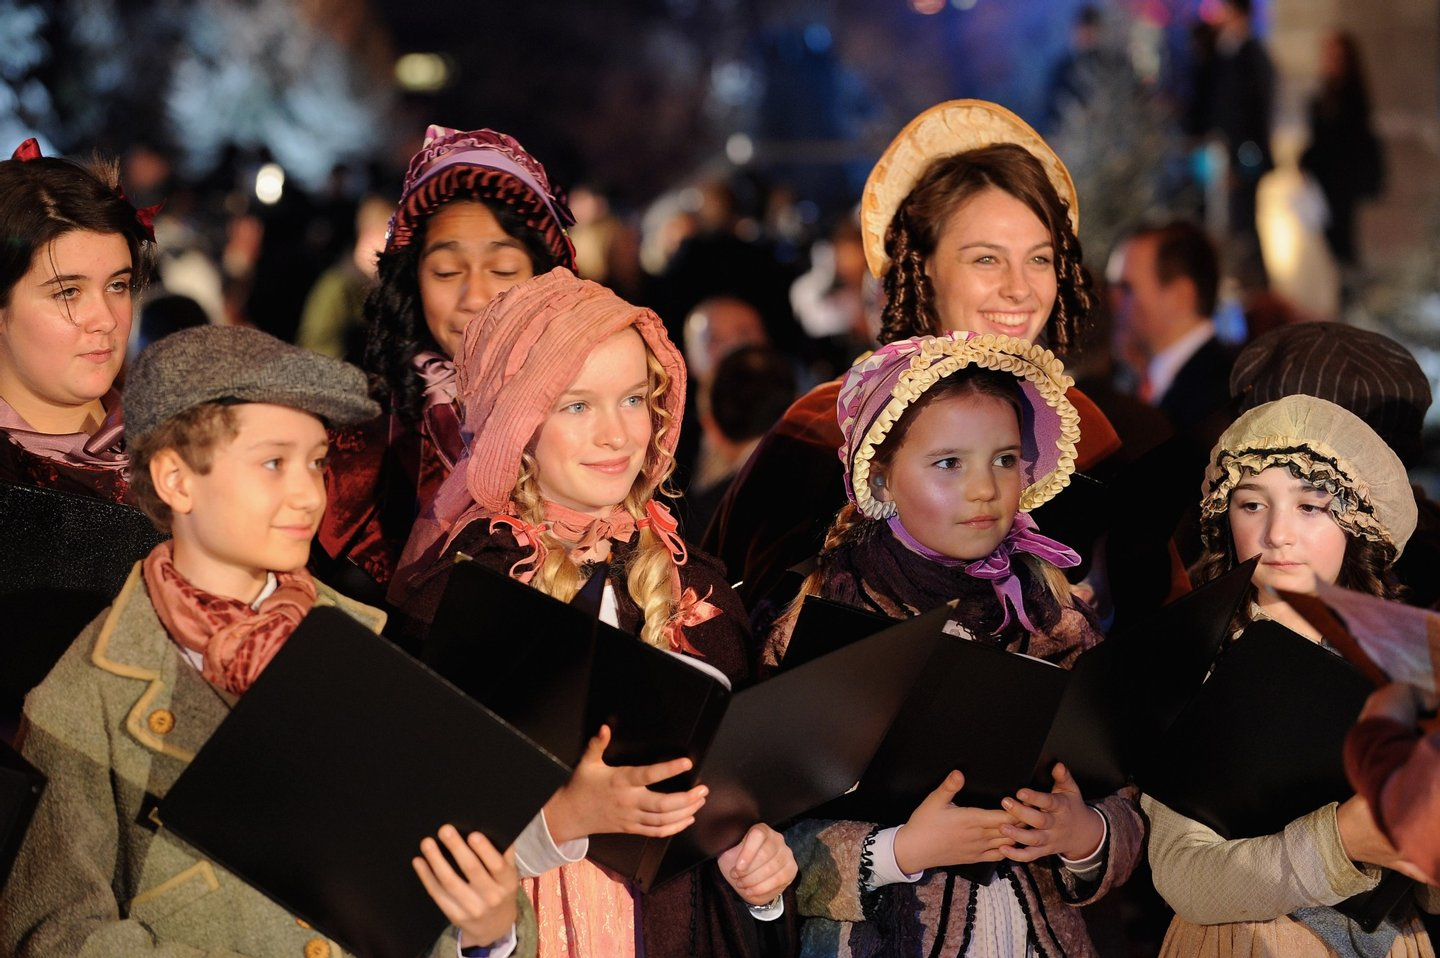 LONDON, ENGLAND - NOVEMBER 03: A choir sings christmas carols during for the World Film Premiere of Disney's 'A Christmas Carol' at the Odeon Leicester Square on November 3, 2009 in London, England. (Photo by Ian Gavan/Getty Images for Disney)